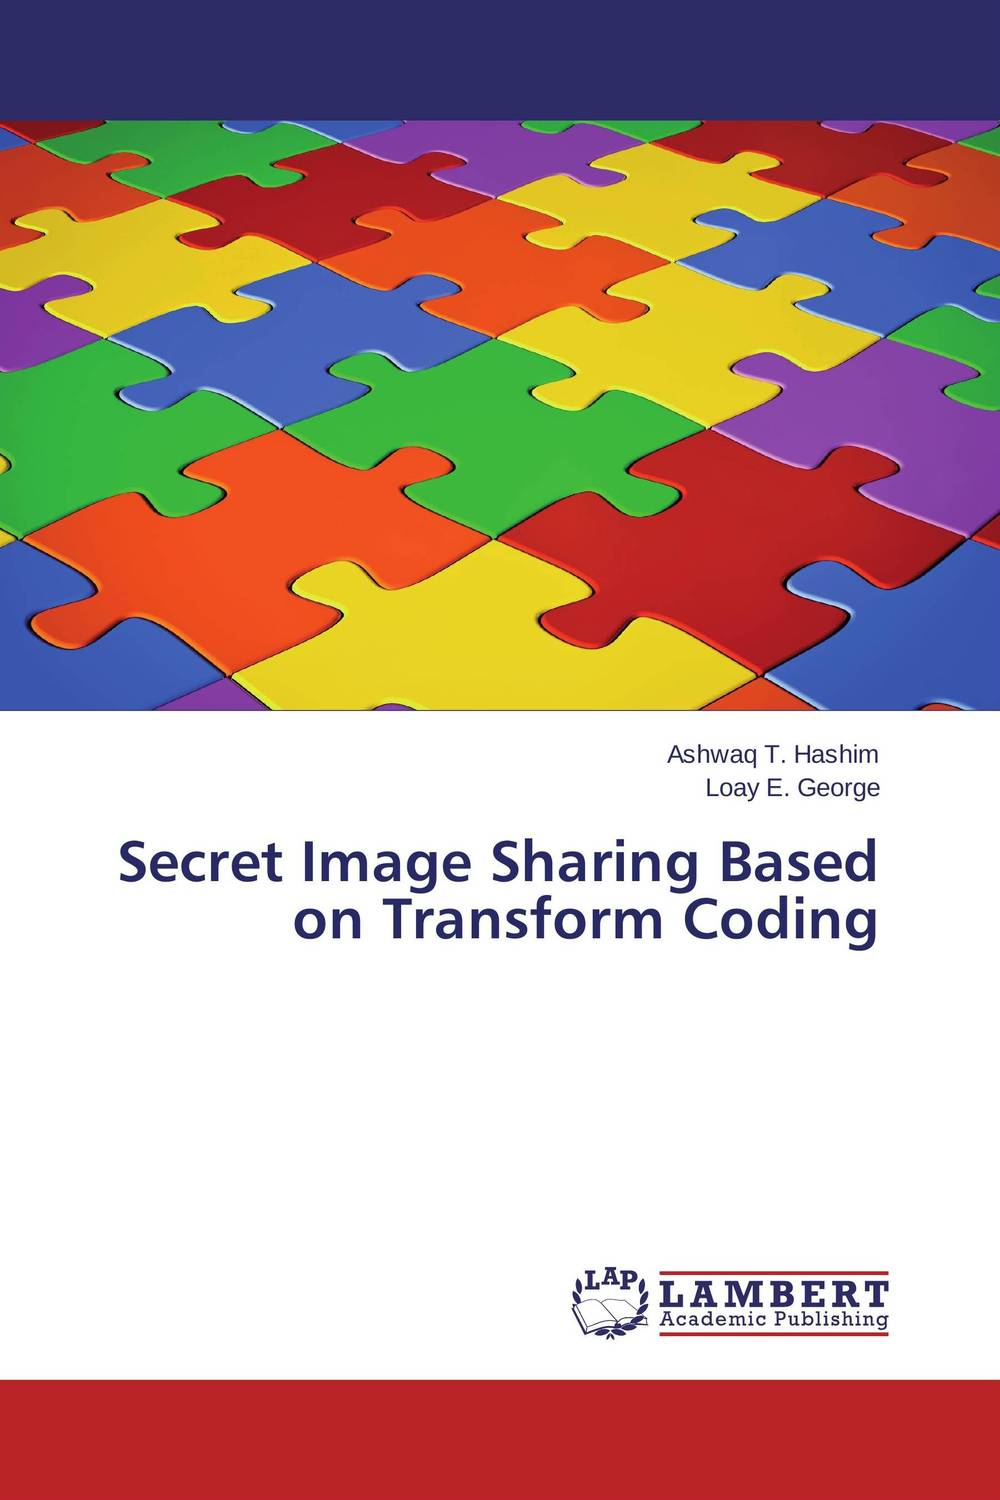 Secret Image Sharing Based on Transform Coding sharing is caring